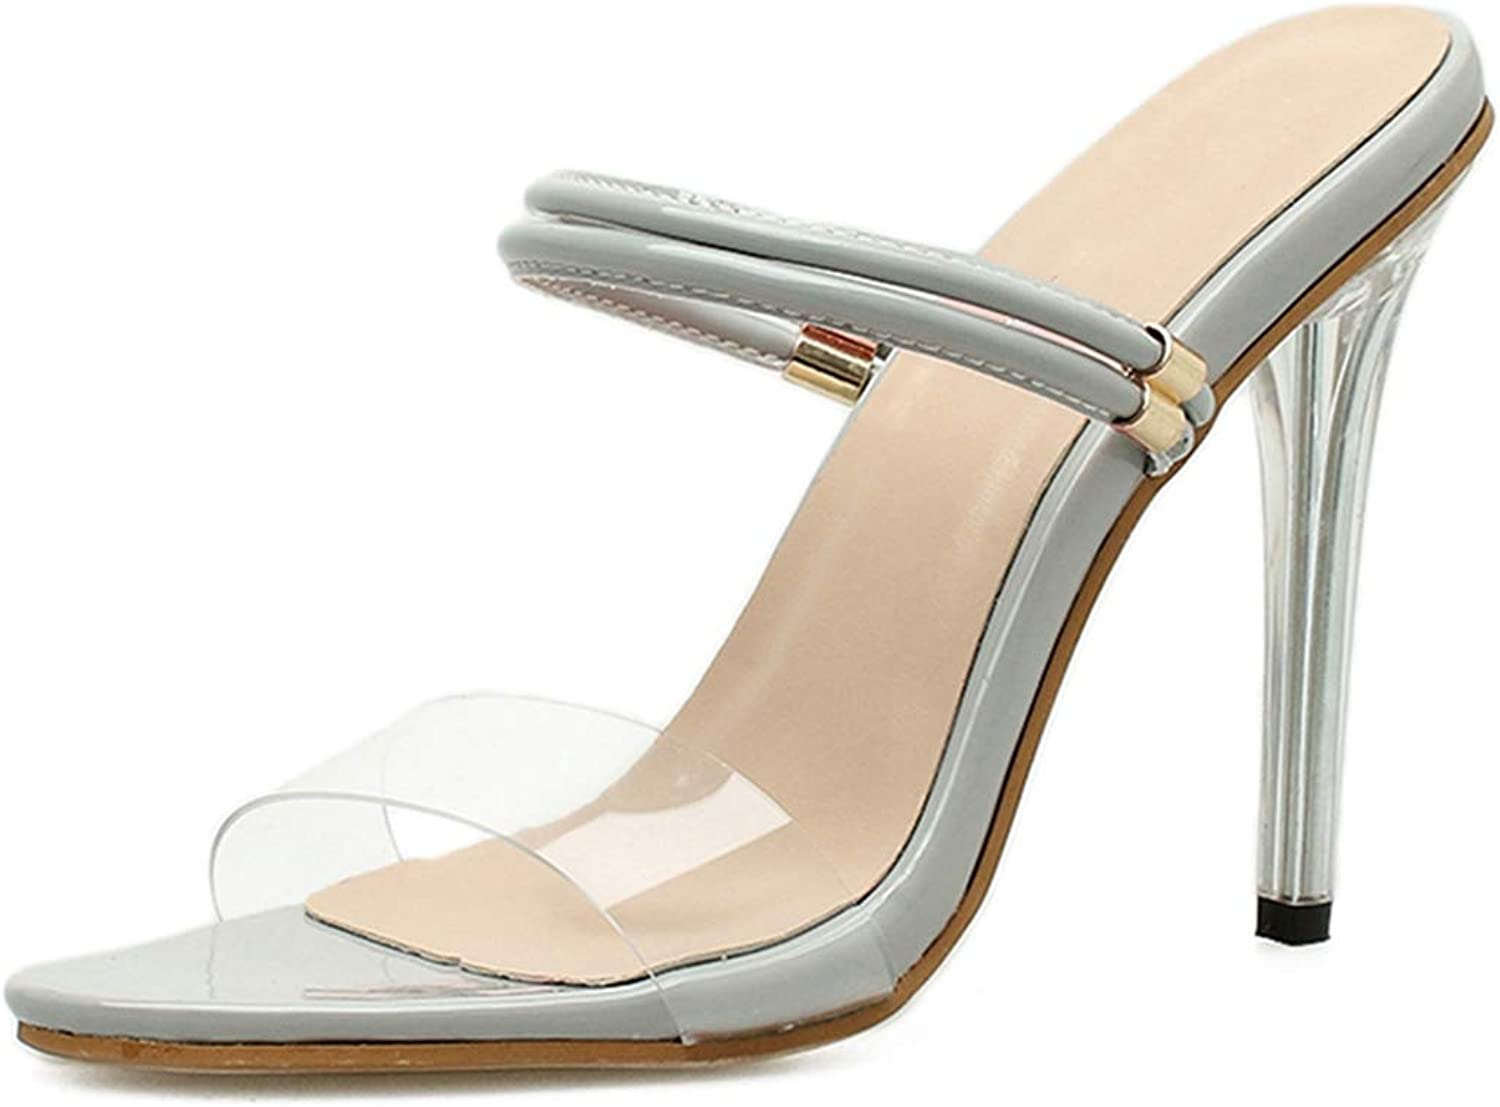 Women's Summer Slippers Transparent and Clear PVC Sandal High Heels Ladies Stilettos shoes